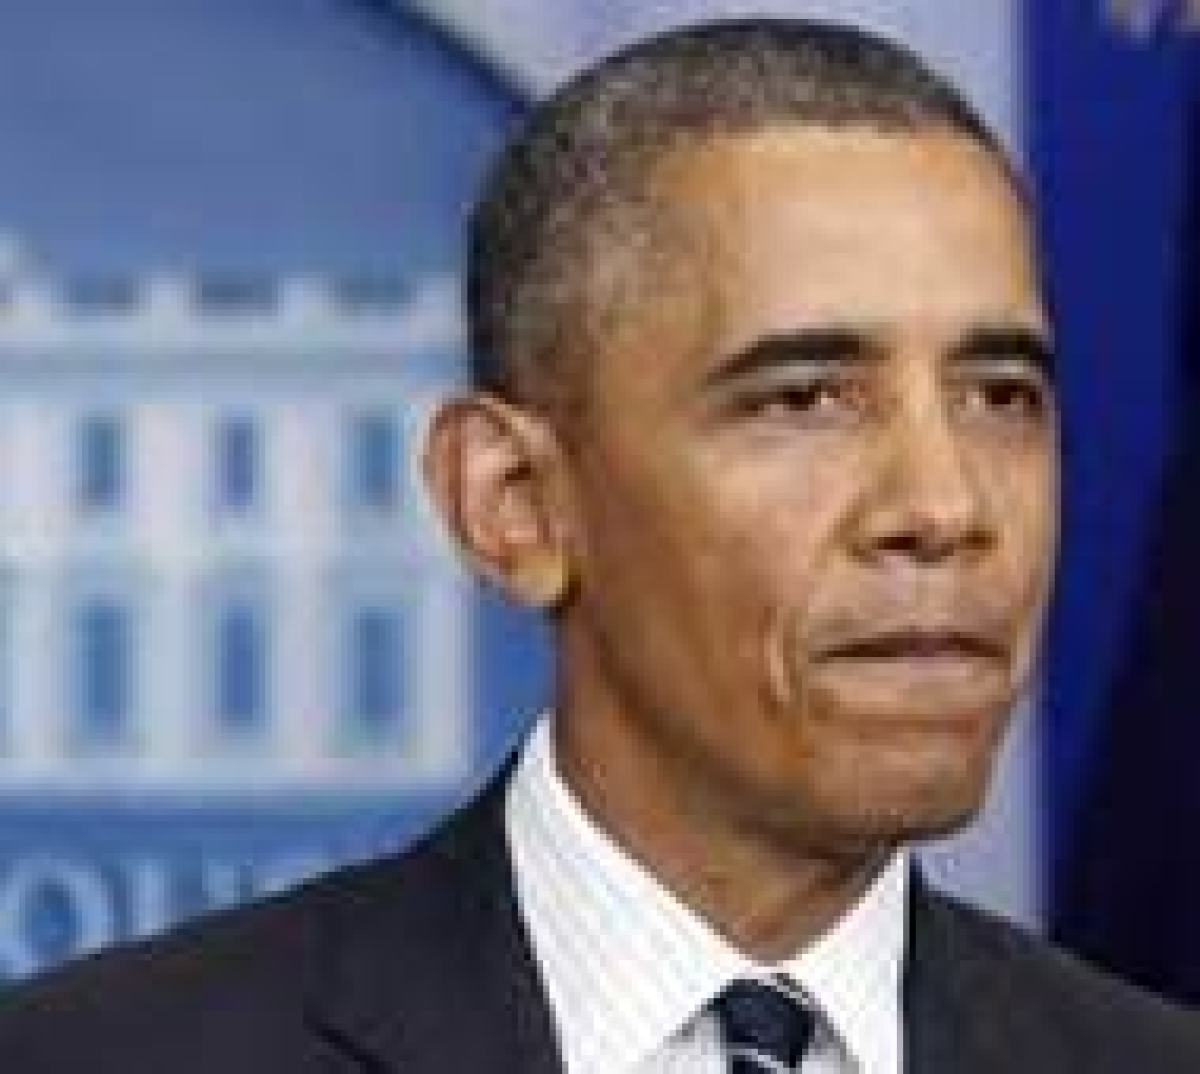 Obama asks top military commanders to ensure defeat of ISIS